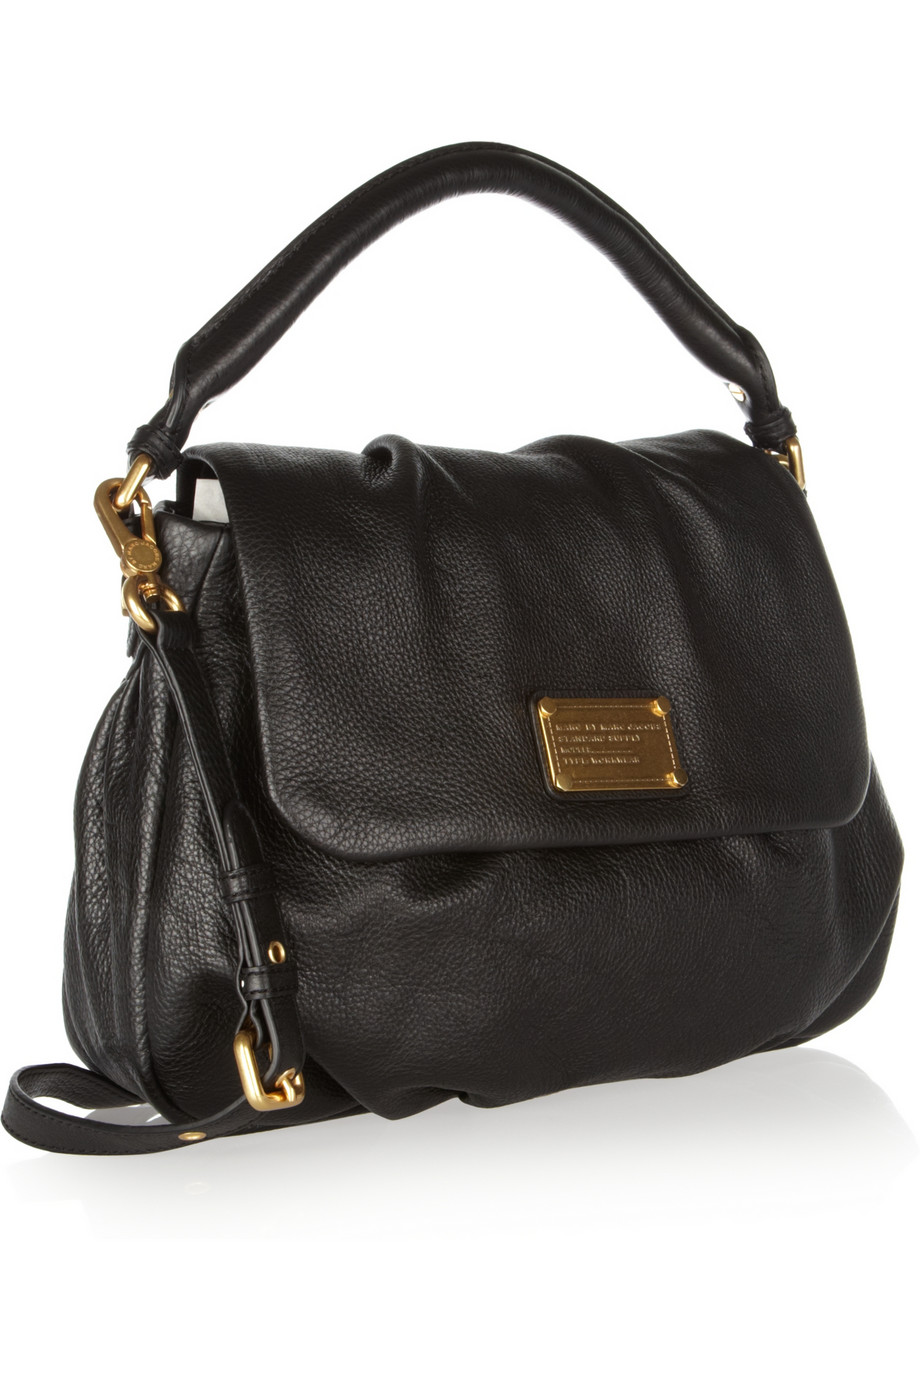 marc by marc jacobs classic q lil ukita textured leather shoulder bag in black lyst. Black Bedroom Furniture Sets. Home Design Ideas